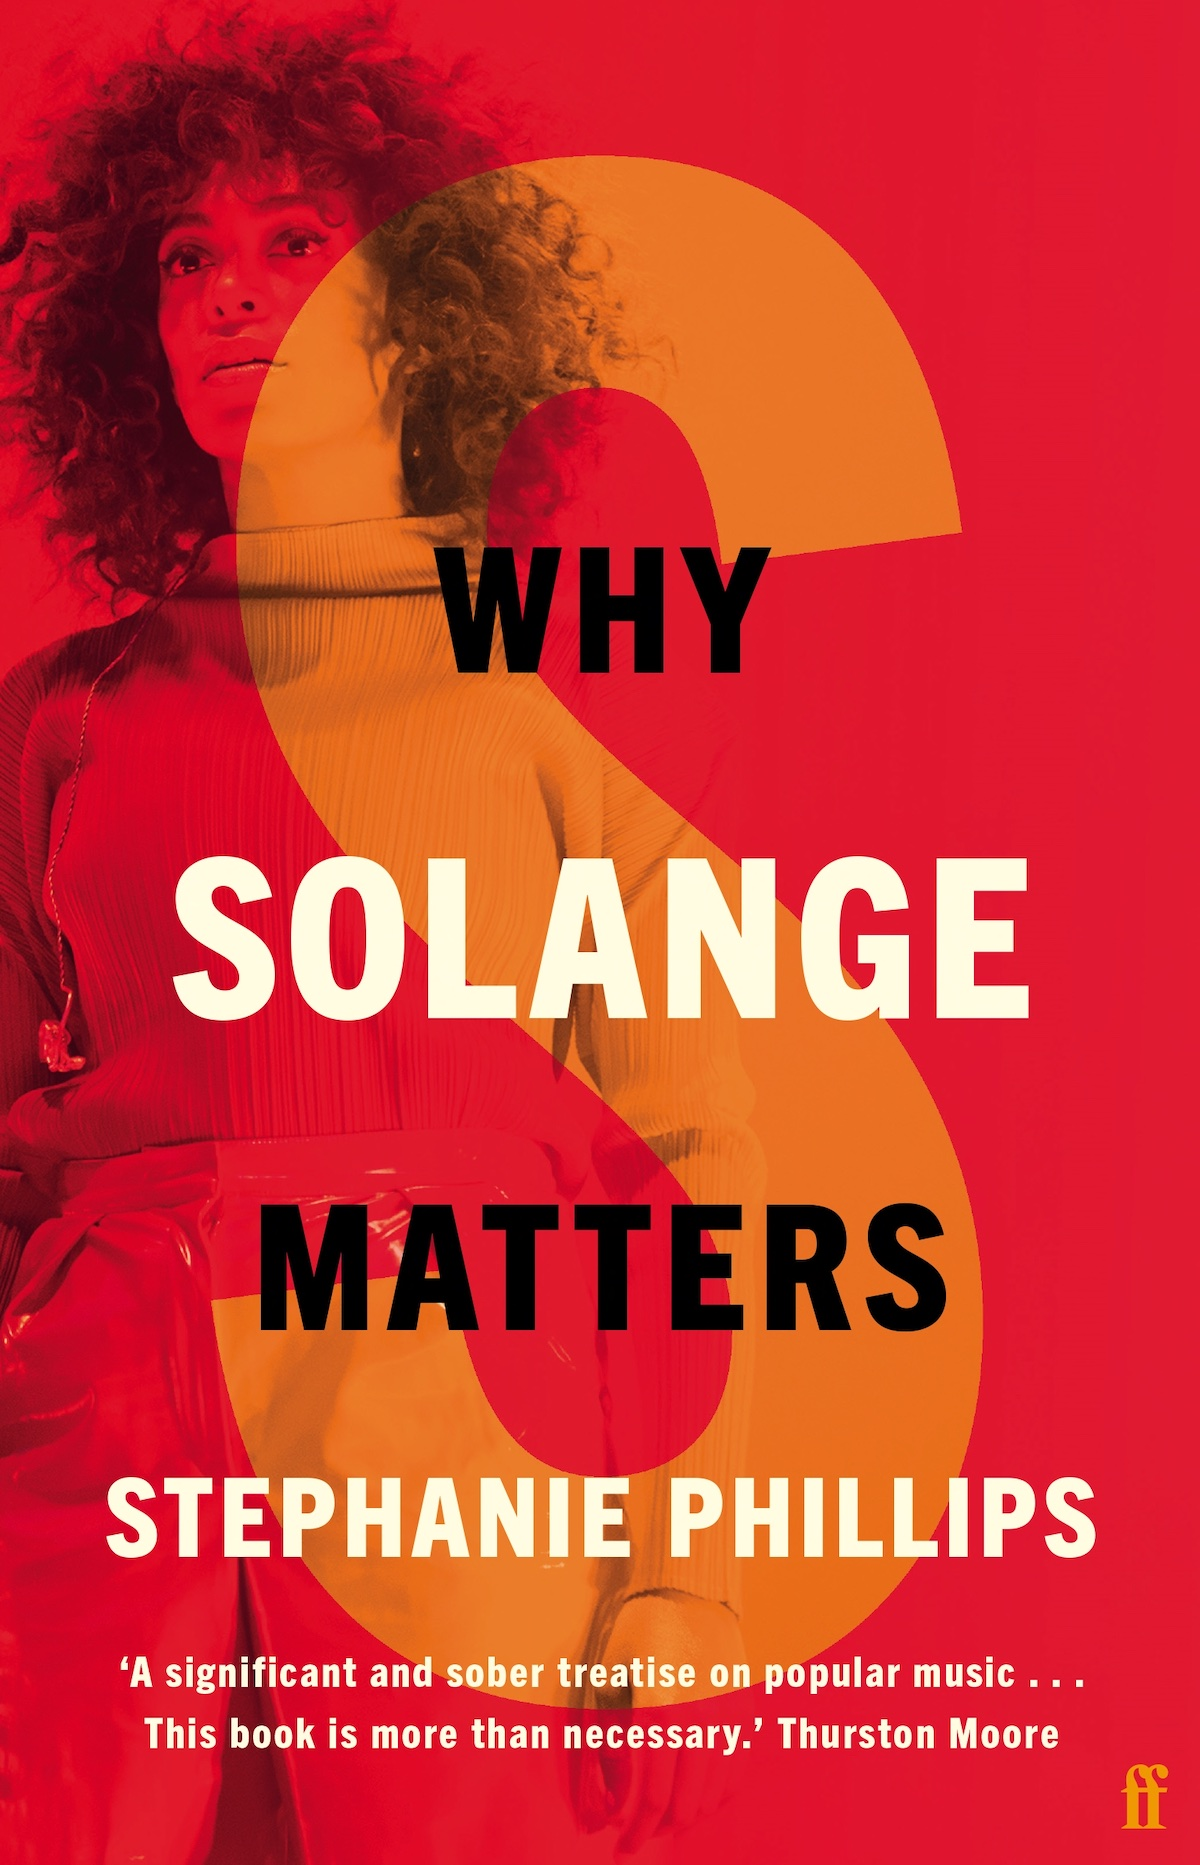 Why Solange Matters (alternate book cover)